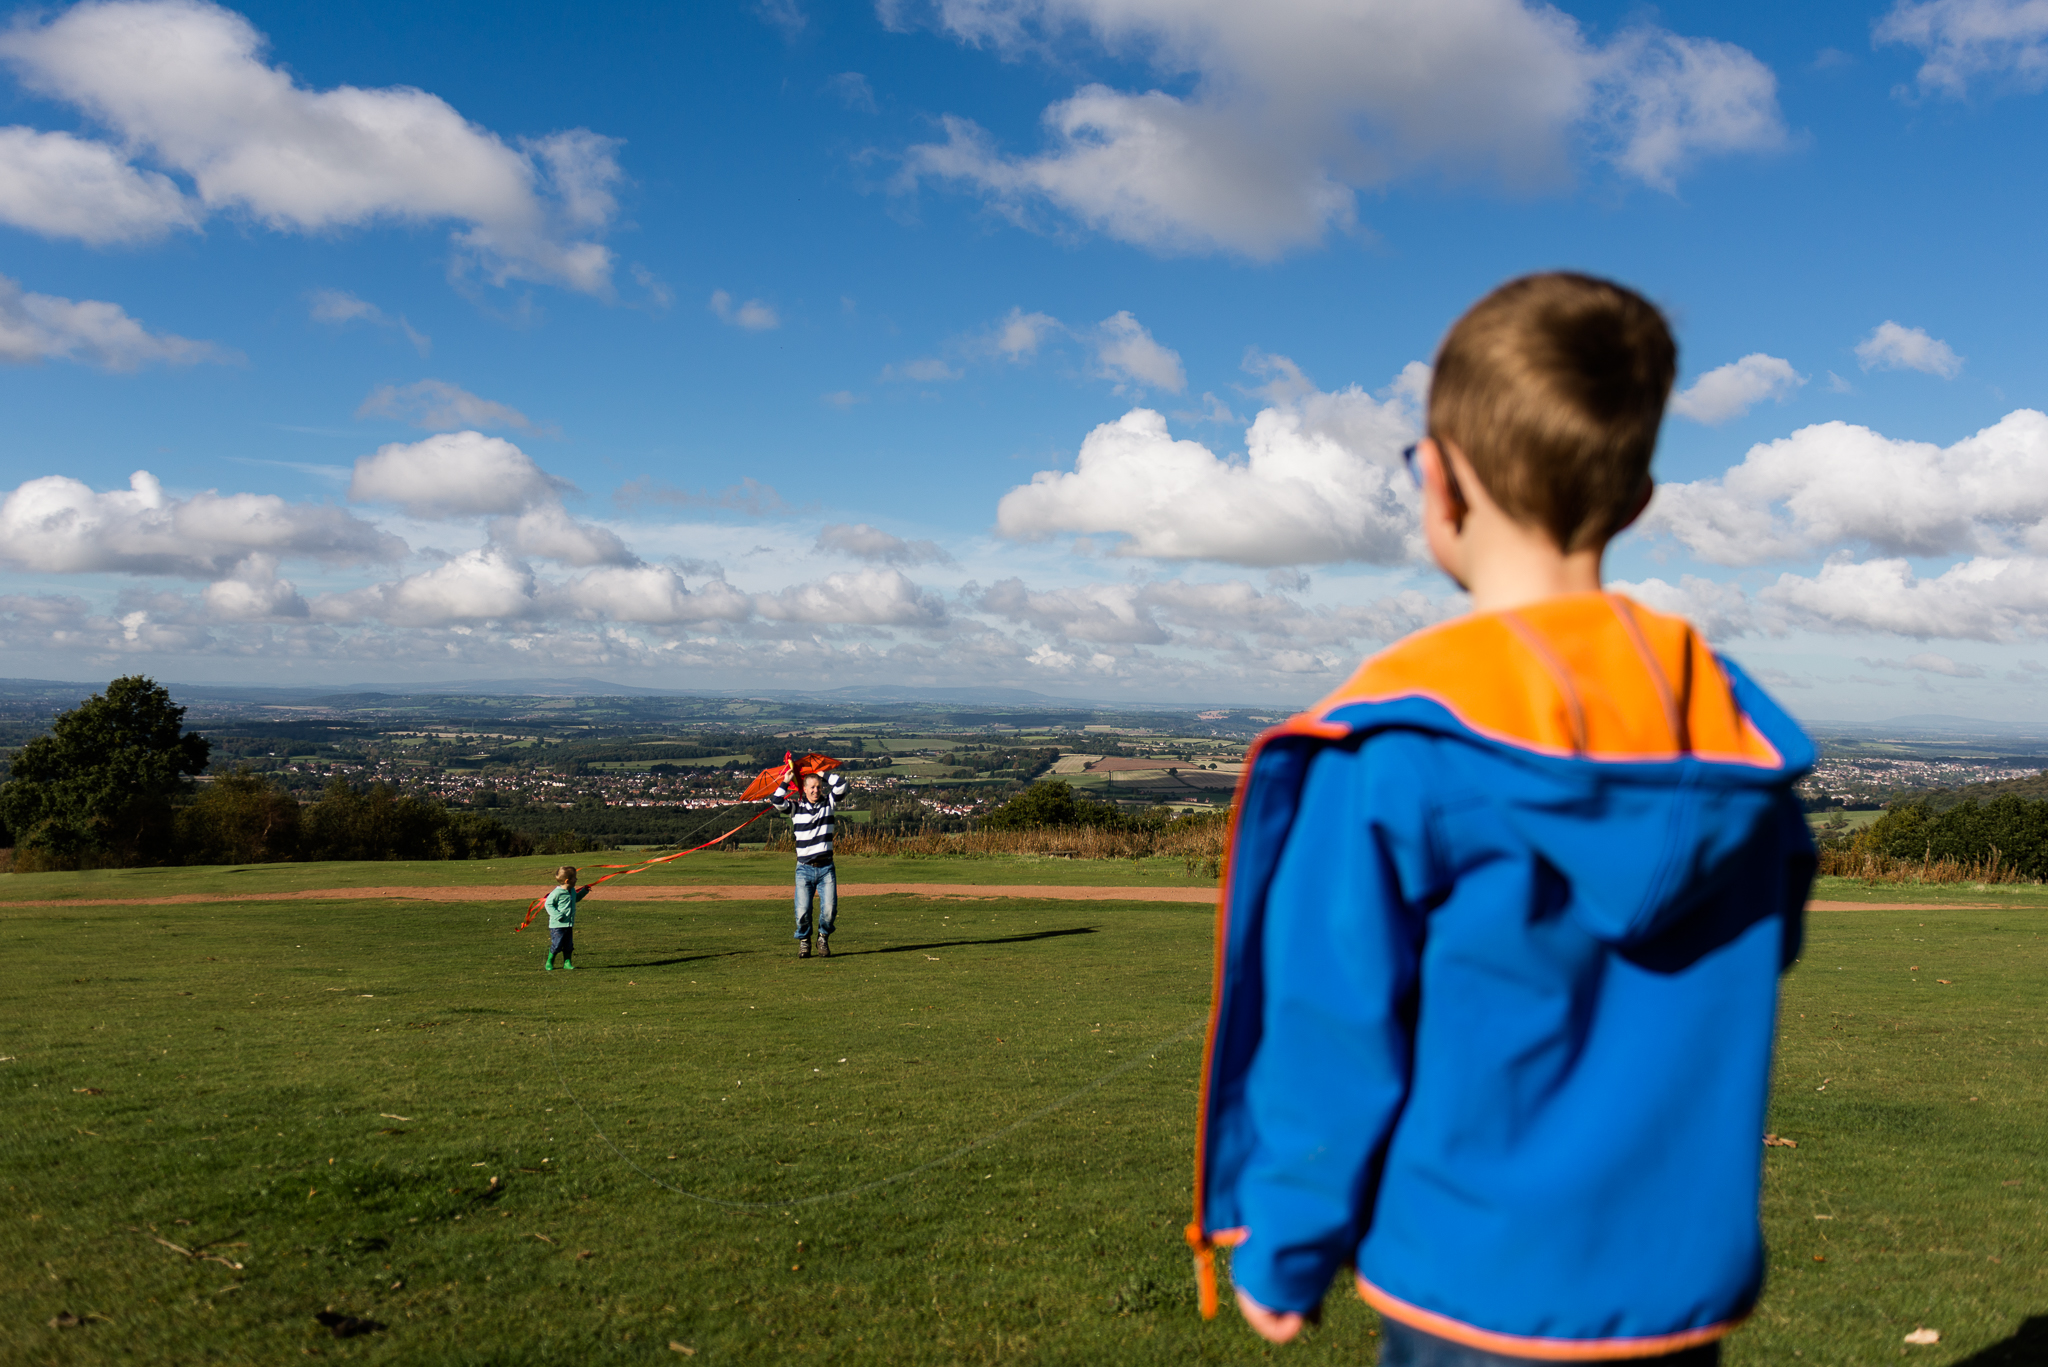 Documentary Family Photography at Clent Hills, Worcestershire Family Lifestyle Photography Woods Outdoors Trees Flying Kite - Jenny Harper-10.jpg